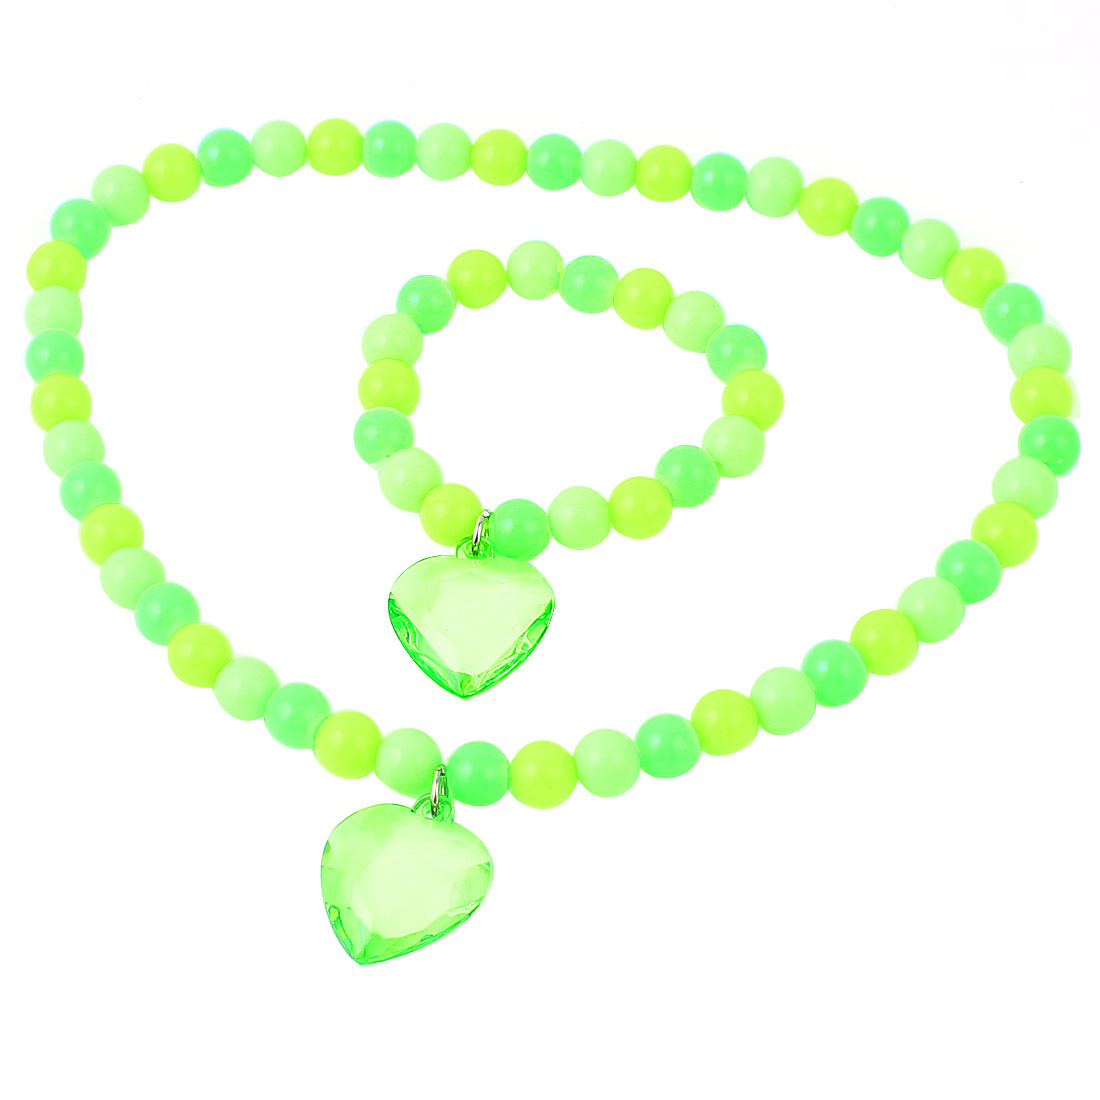 Green Yellow Stretchy Heart Shaped Pendant Beads Necklace w Bracelet for Lady